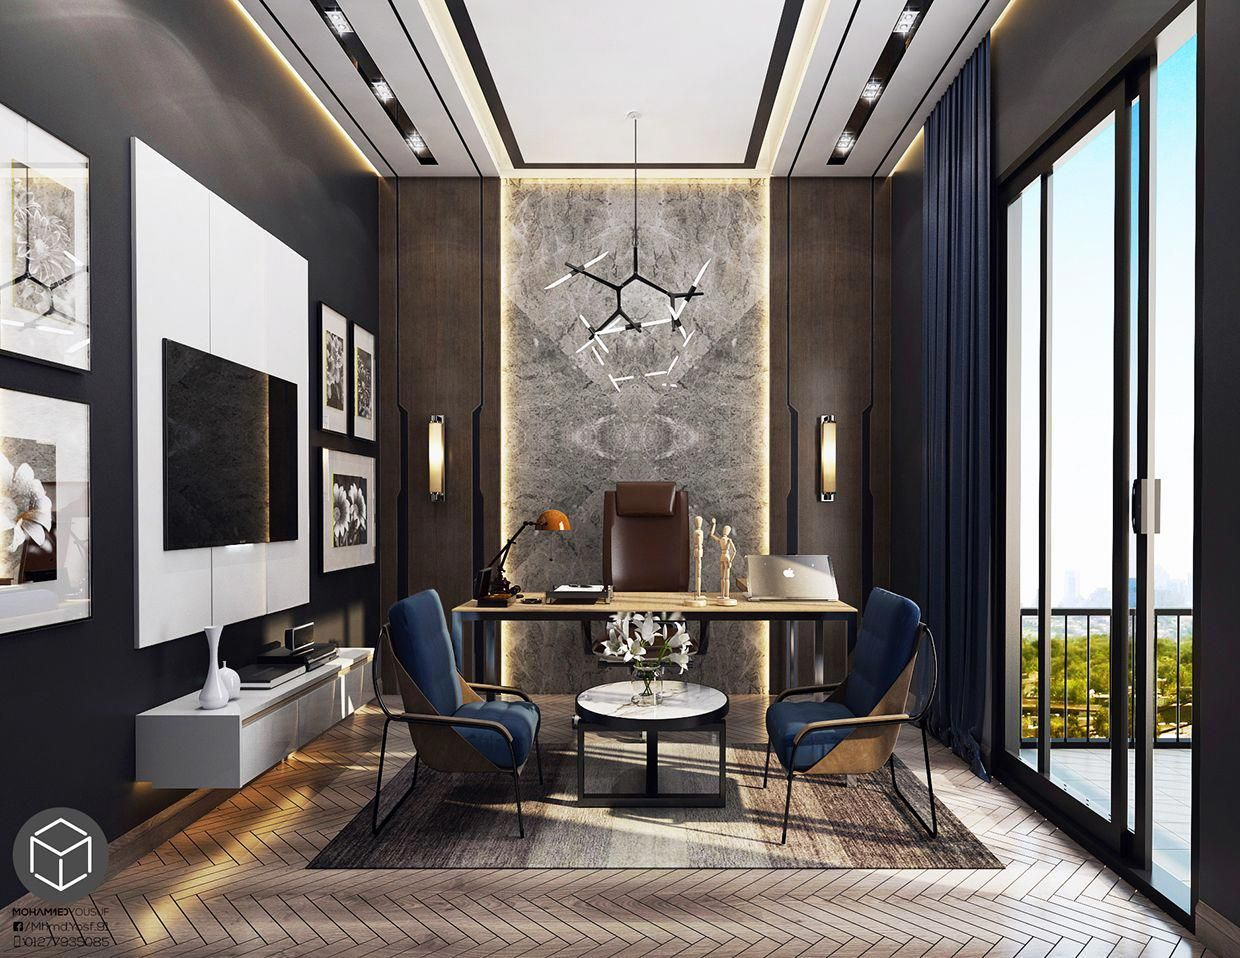 Home Office Decor Inspiration Is Very Important For Your Home Whether You Choose The Modern Office Design Home Or Ic Tasarim Ofisler Urun Tasarimi Cerceve Ev